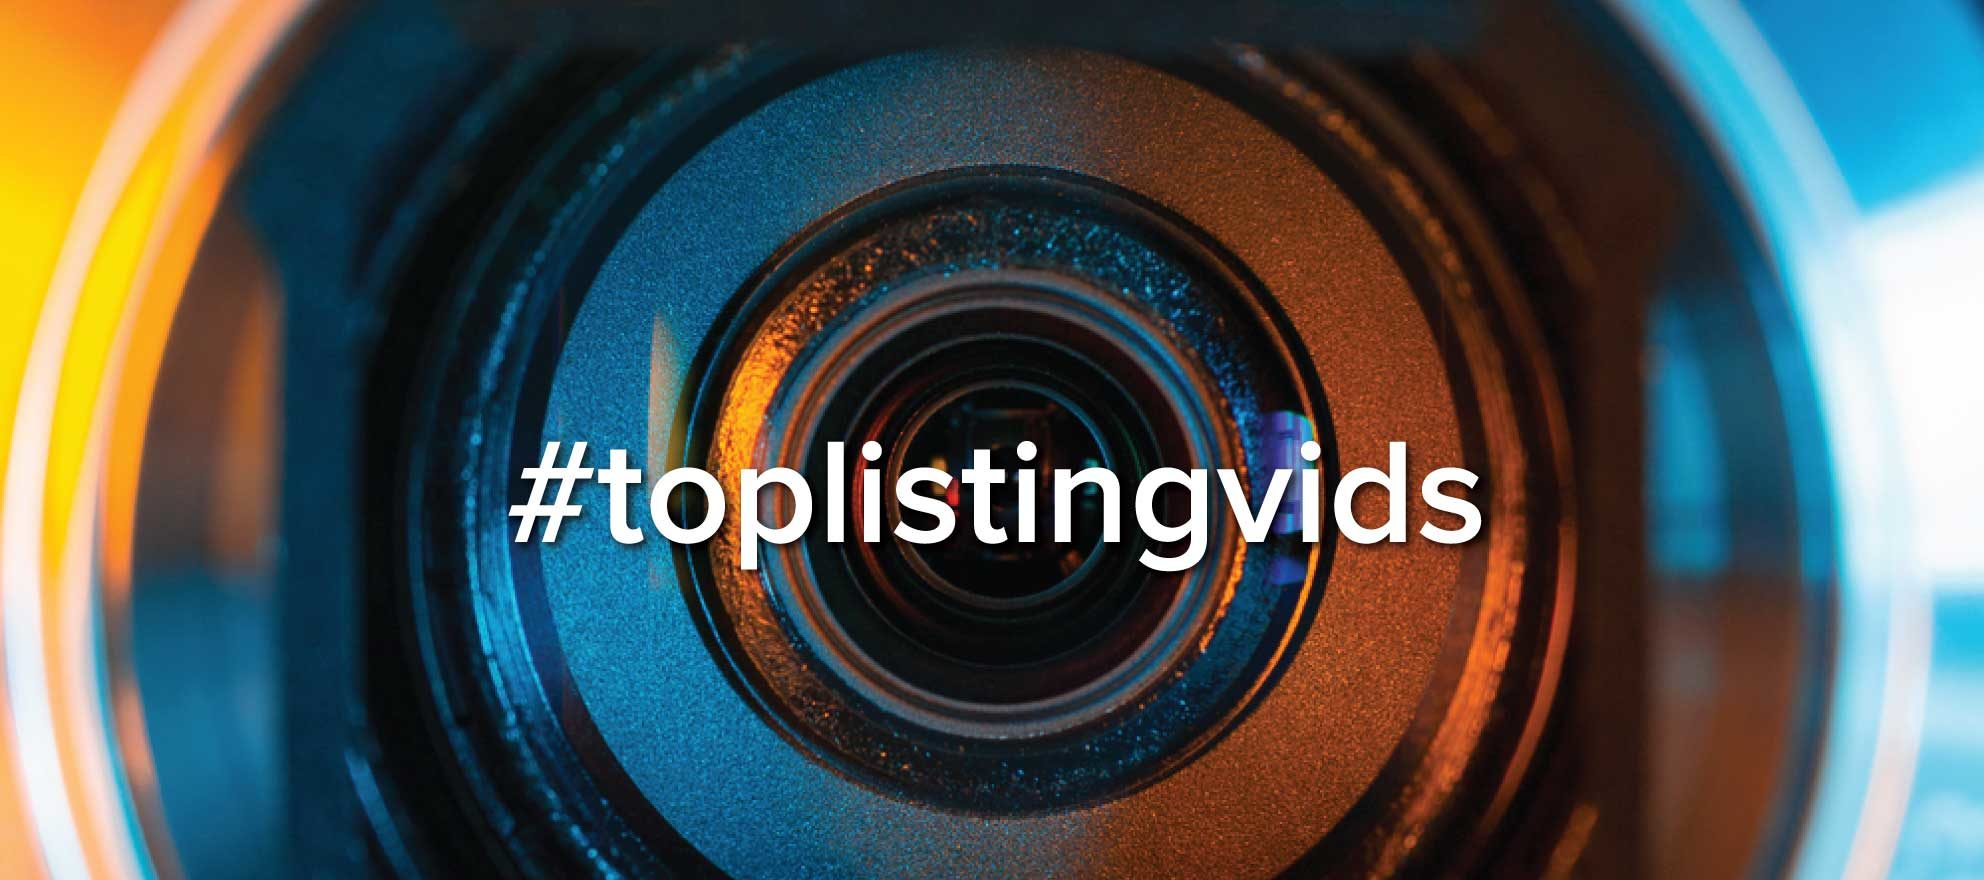 Introducing #toplistingvids, a weekly contest to showcase real estate's best listing videos